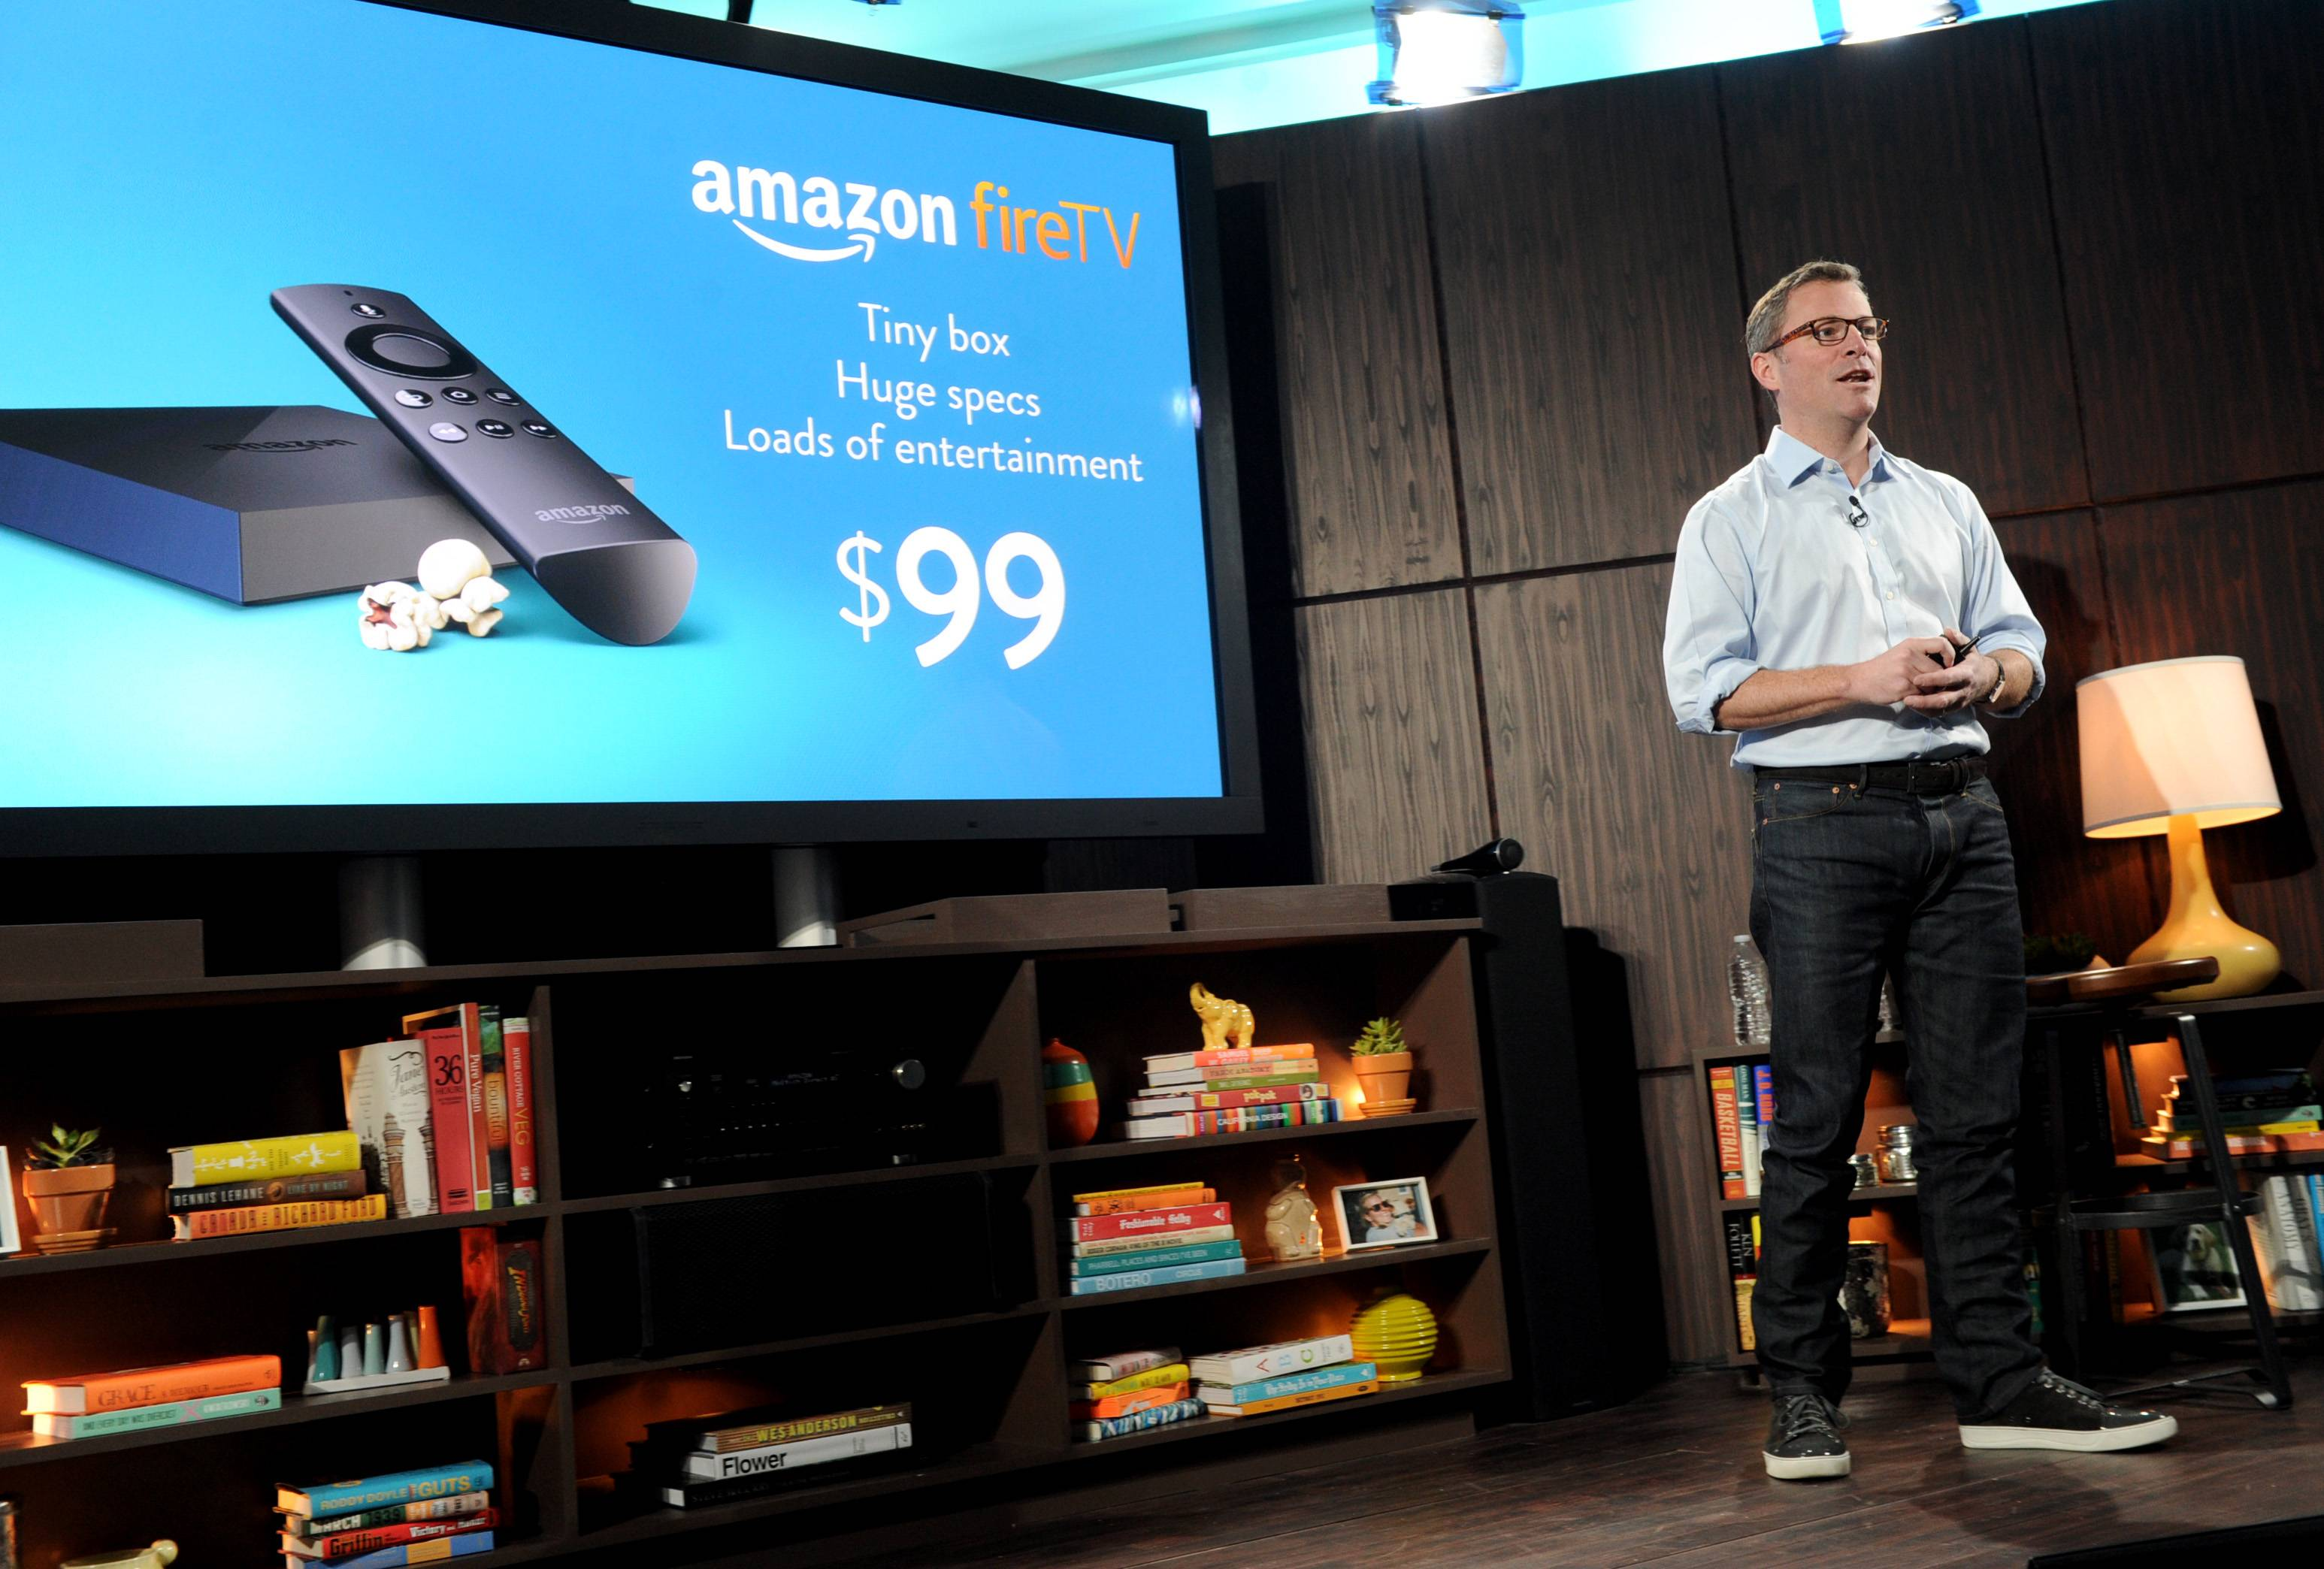 Amazon's Peter Larsen introduces Amazon Fire TV during a news conference in New York, Wednesday, April 2, 2014. At $99, Amazon Fire TV is the easiest way to watch Netflix, Prime Instant Video, Hulu Plus, WatchESPN, and more on your big-screen TV.